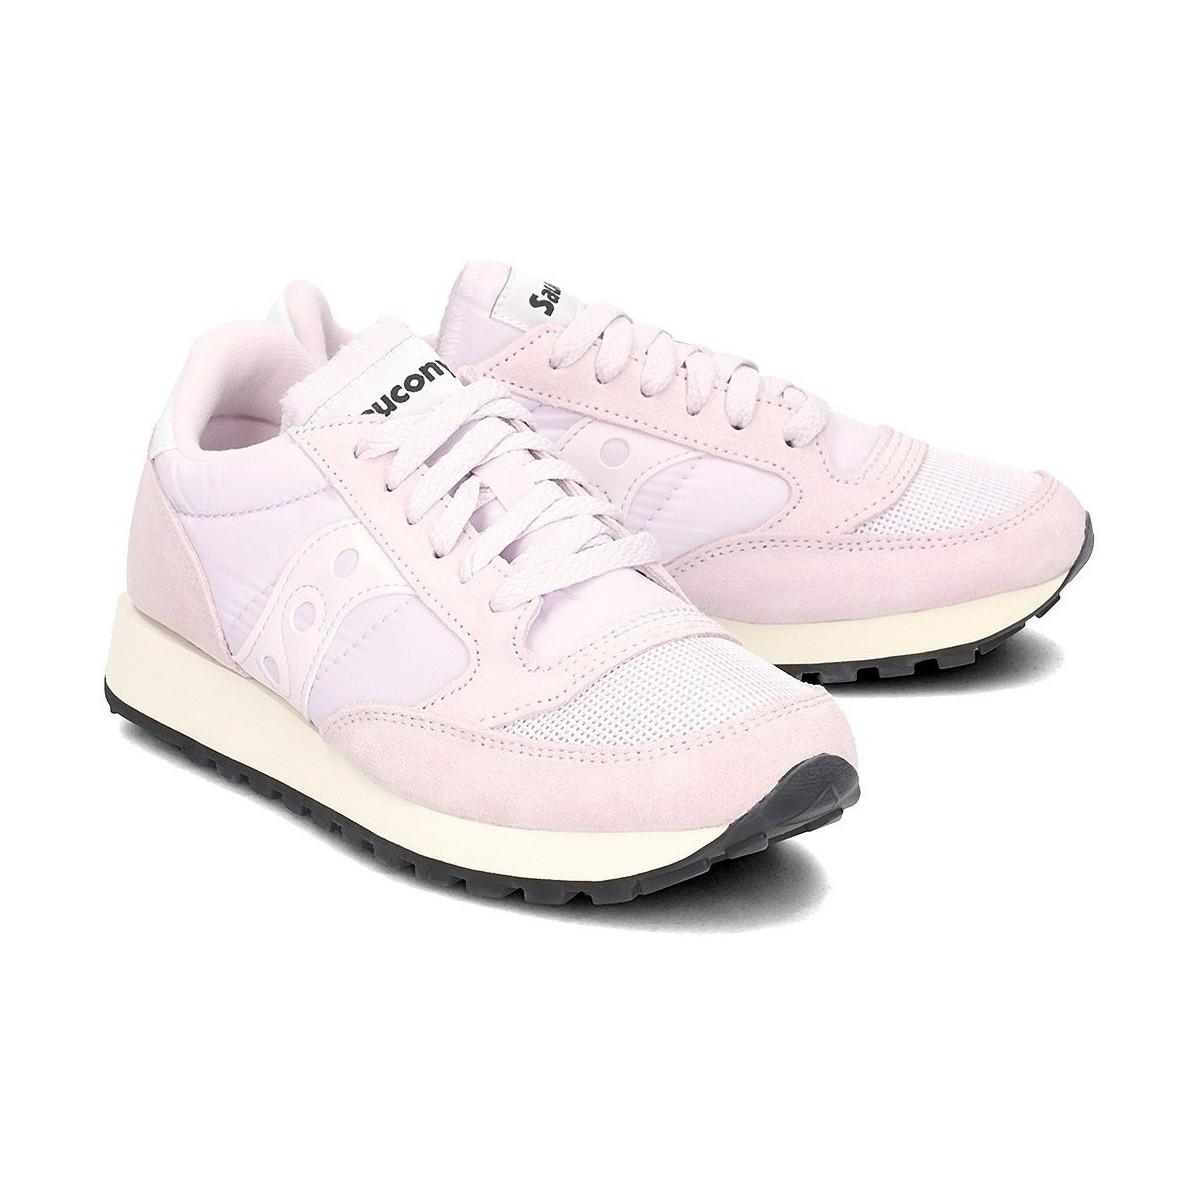 7a6fb748a82 Saucony - Jazz Original Women s Shoes (trainers) In Pink - Lyst. View  fullscreen